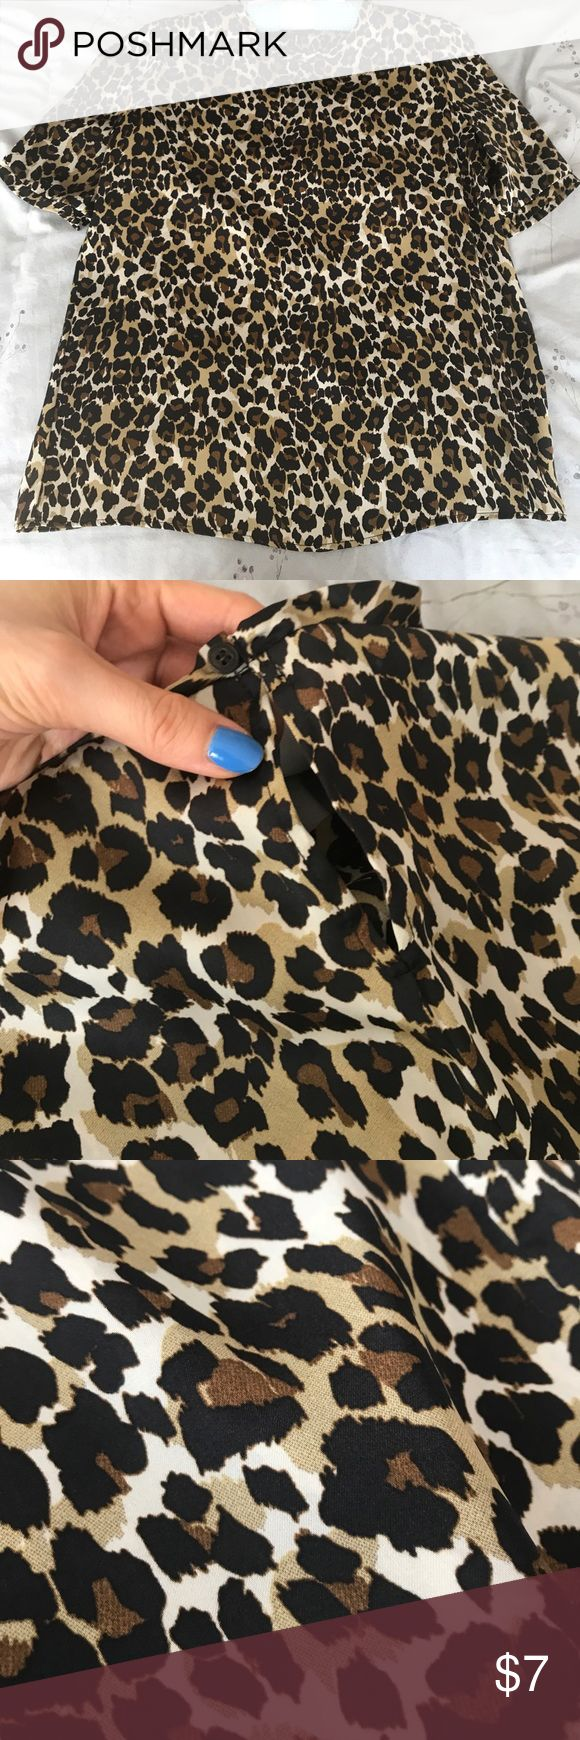 Satin leopard top Satin leopard top in good condition Mango Tops Blouses